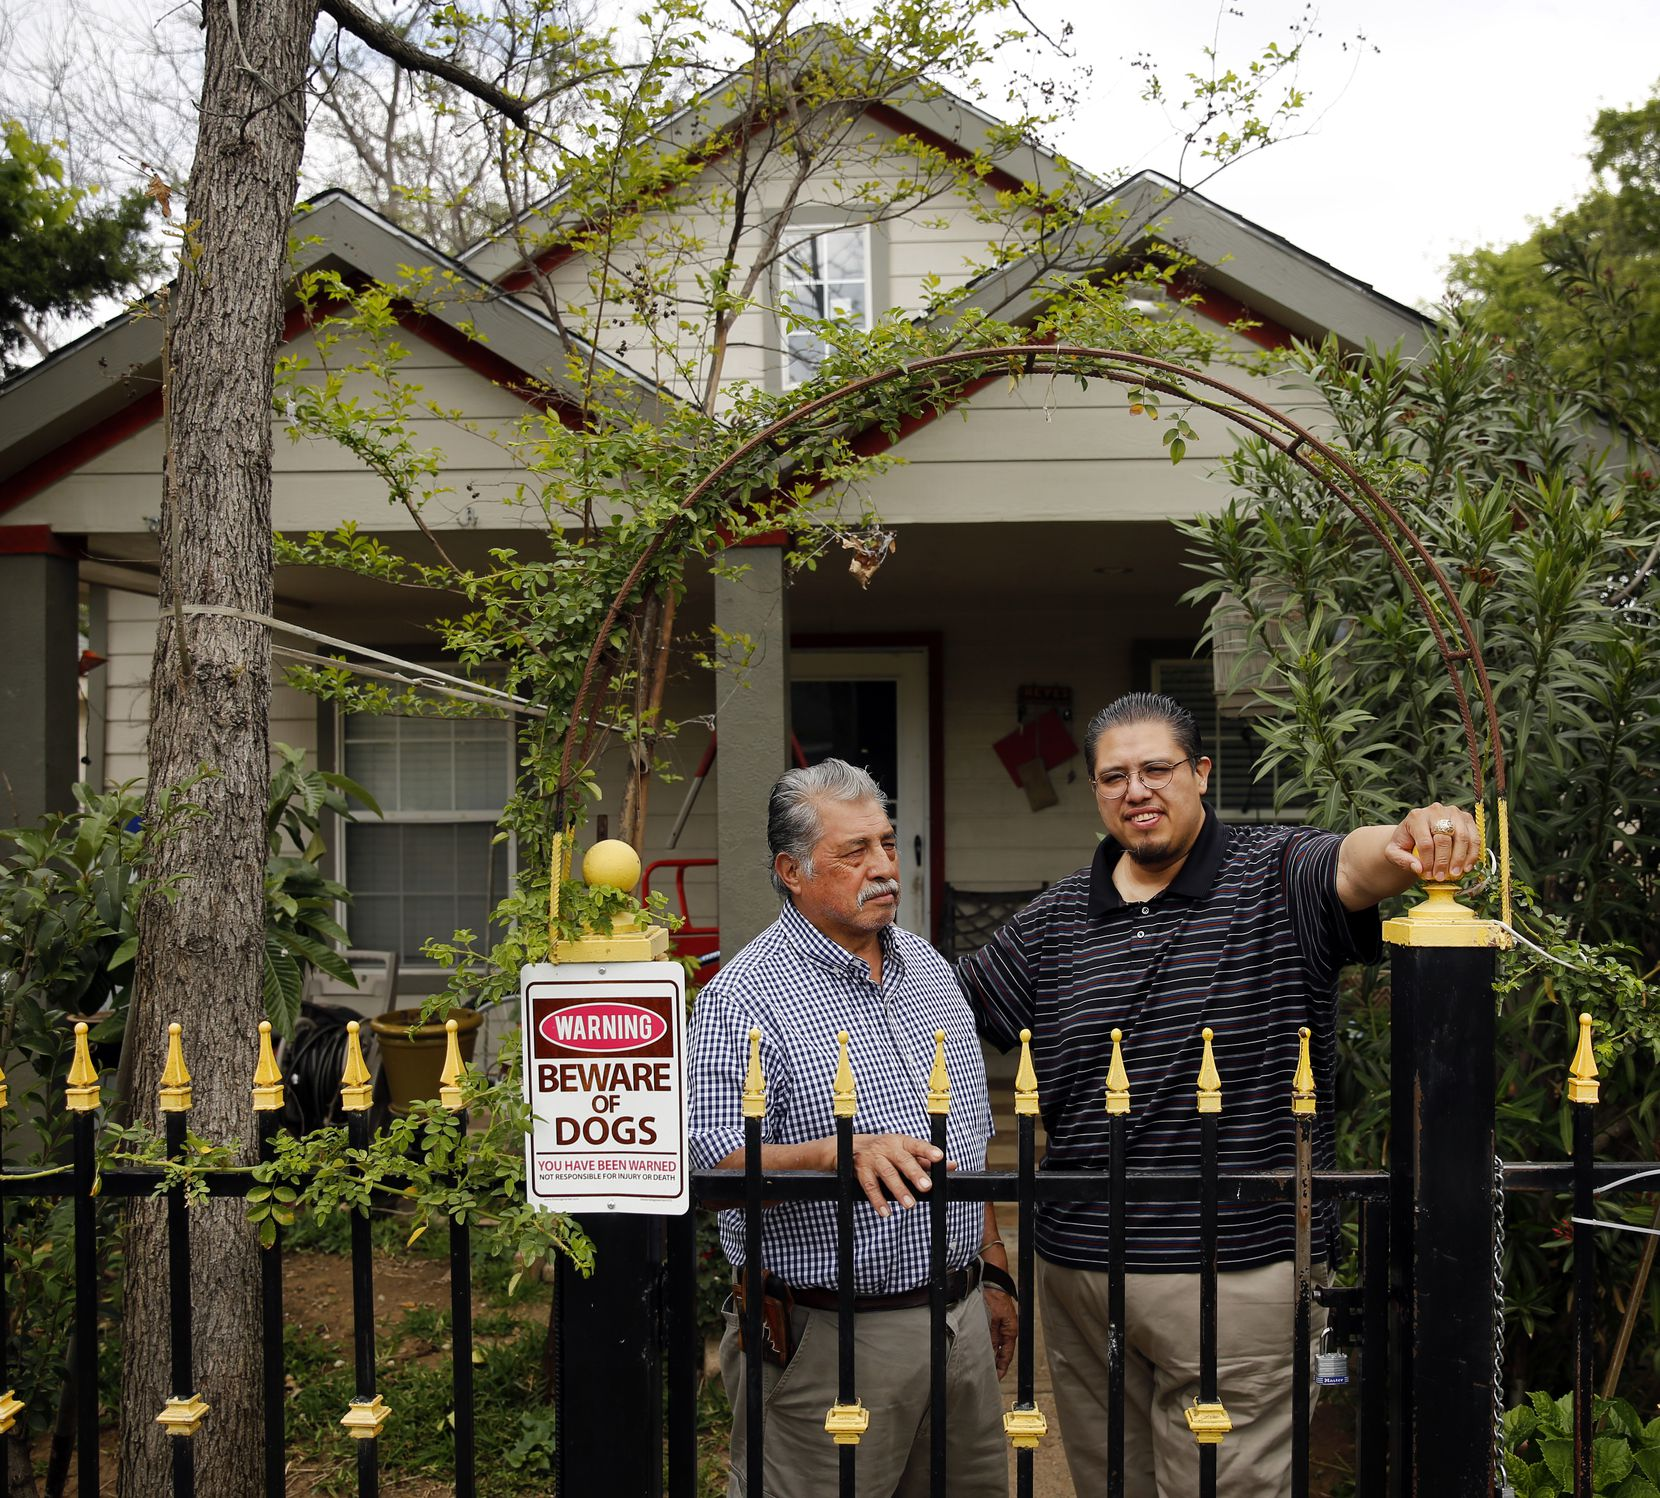 West Dallas homeowner Raul Reyes Sr (left) and his son Raul Reyes Jr pose for a photo in front of their family home off Sylvan Ave in Dallas, Wednesday, March 22, 2017. Reyes Jr. was born and raised across the street from his fathers current home (pictured). Reyes Sr has lived in the neighborhood since 1969. (Tom Fox/The Dallas Morning News)